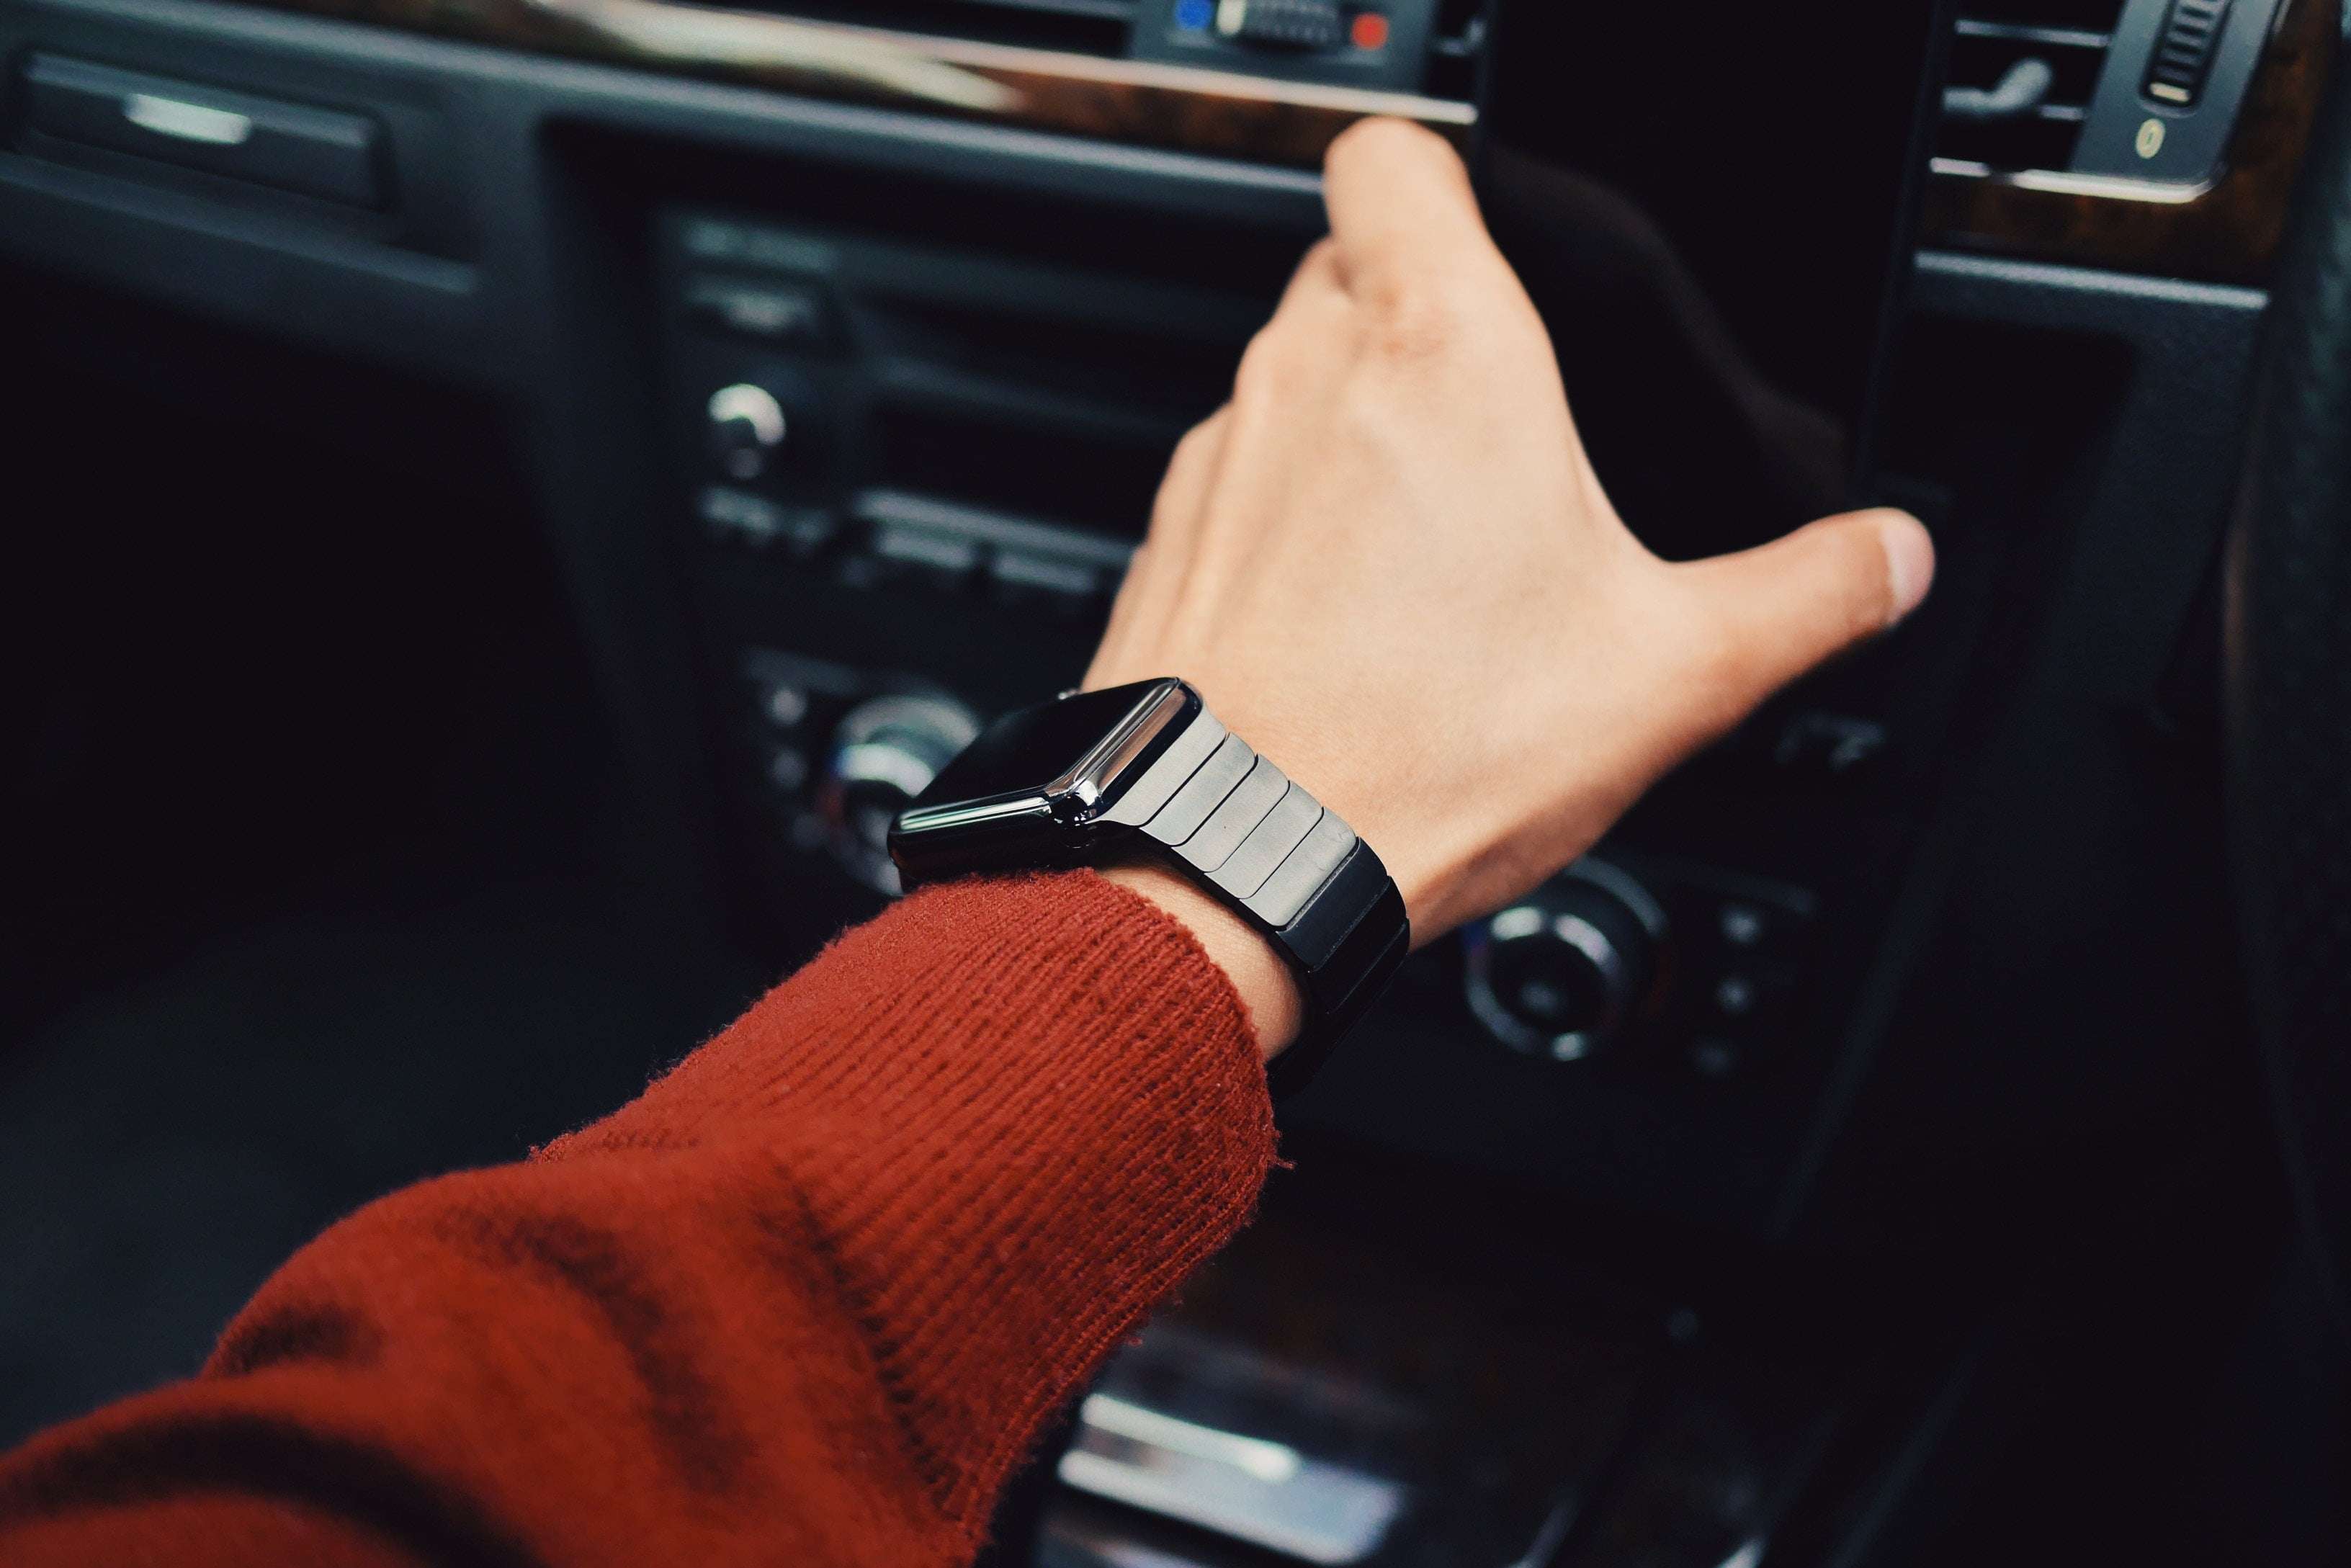 A few essentials to look for when buying a smartwatch